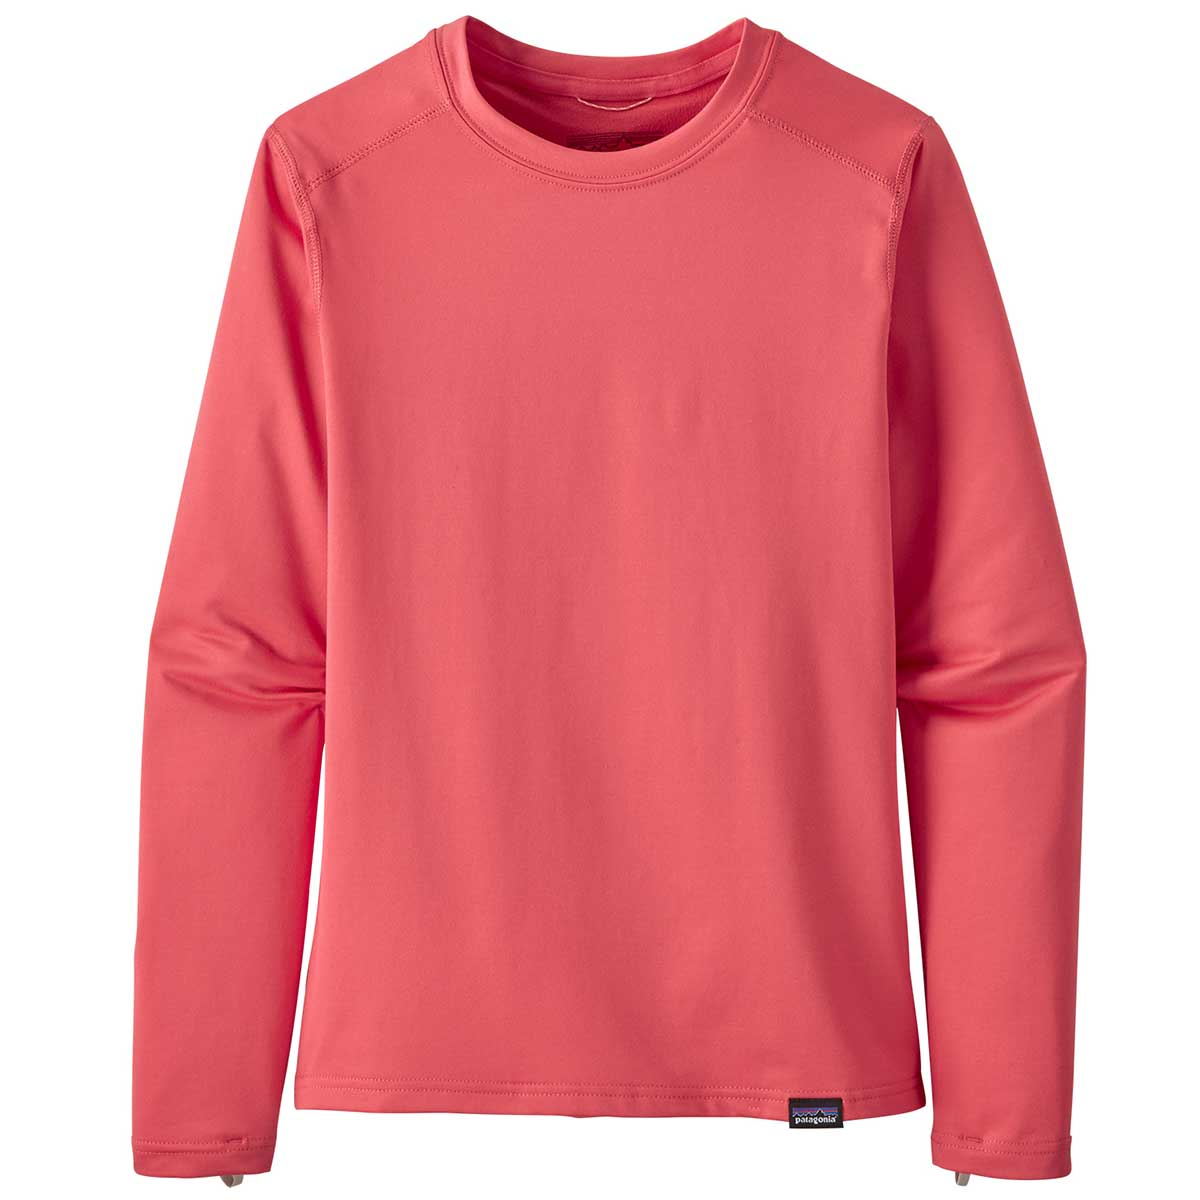 Patagonia kid's Capilene Crew in Range Pink front view